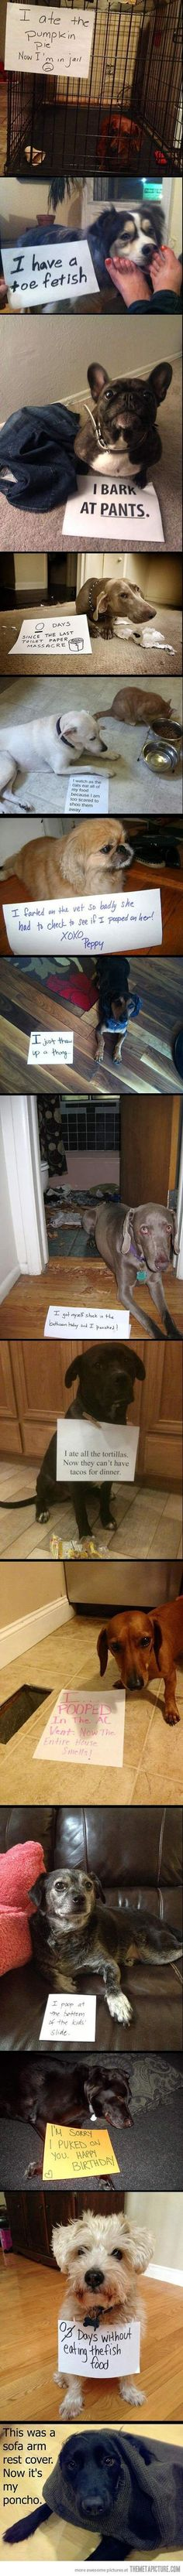 dog shaming at its finest - the last one is my favorite :) I dare you not to laugh!